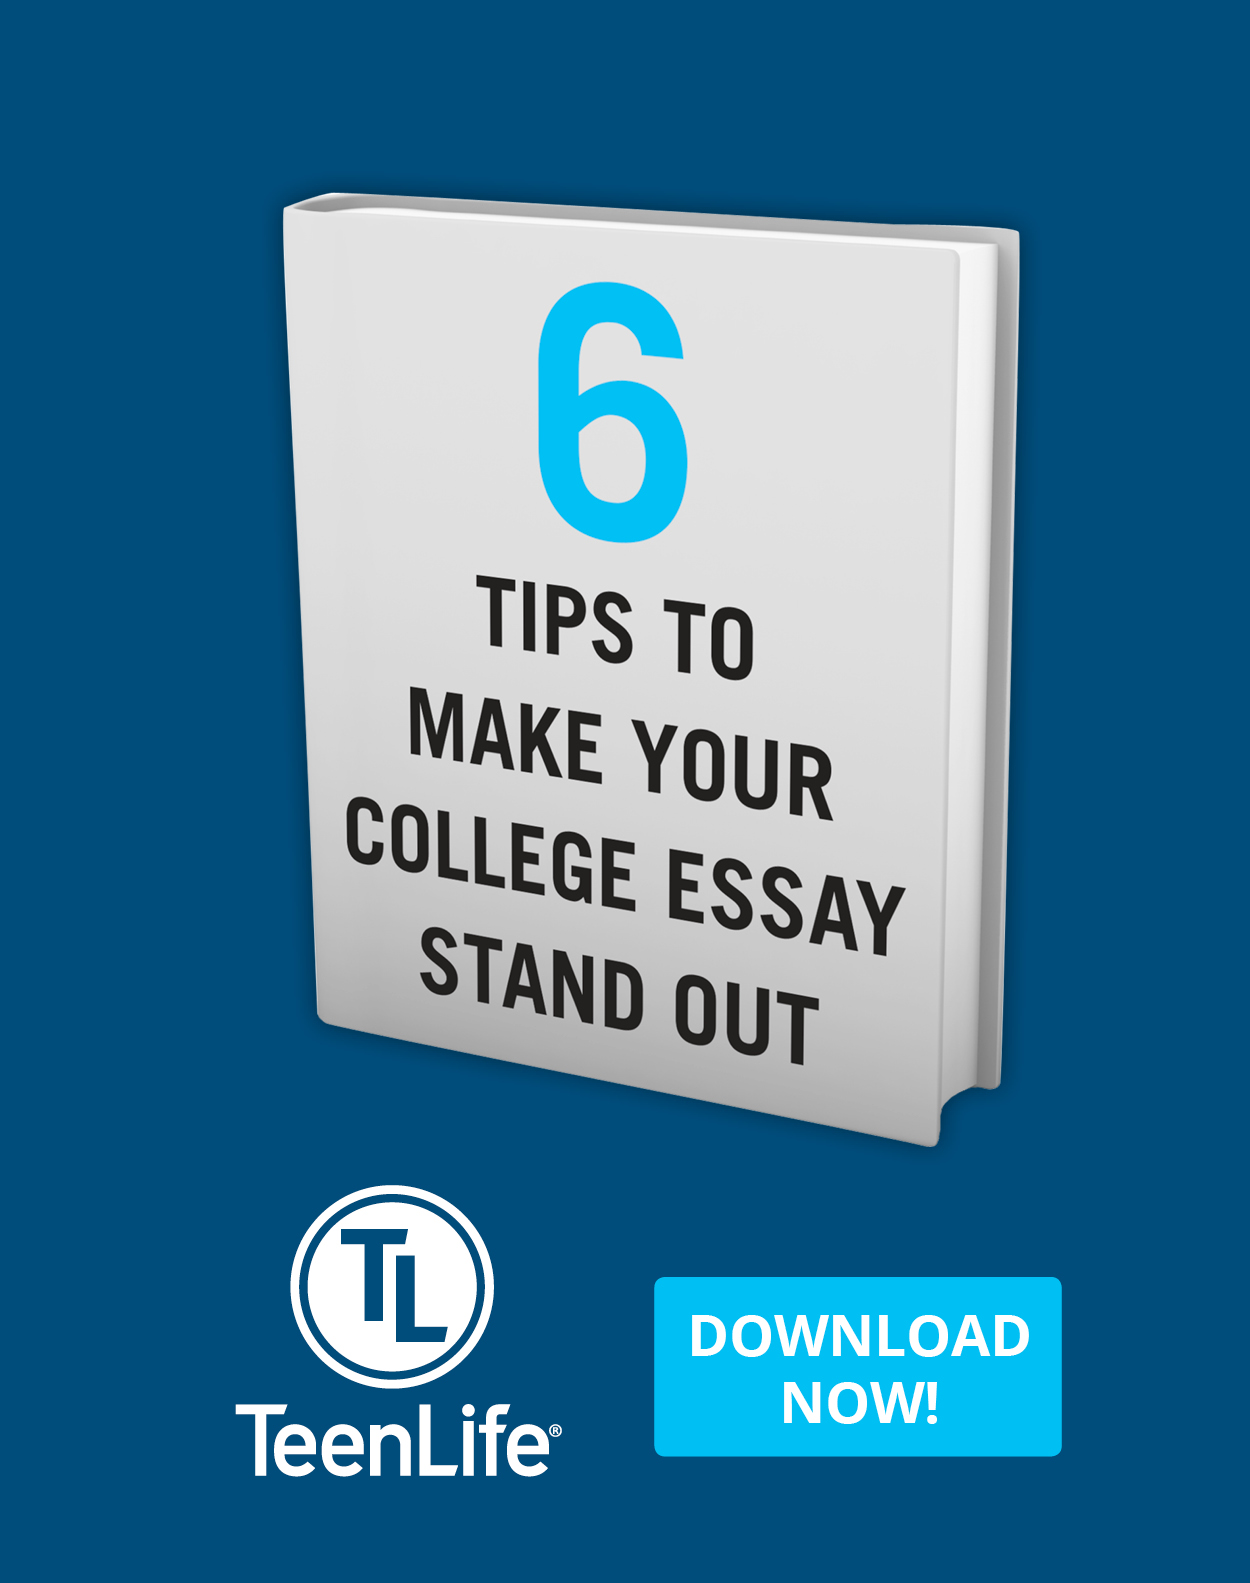 6 Tips to Make Your College Essay Stand Out